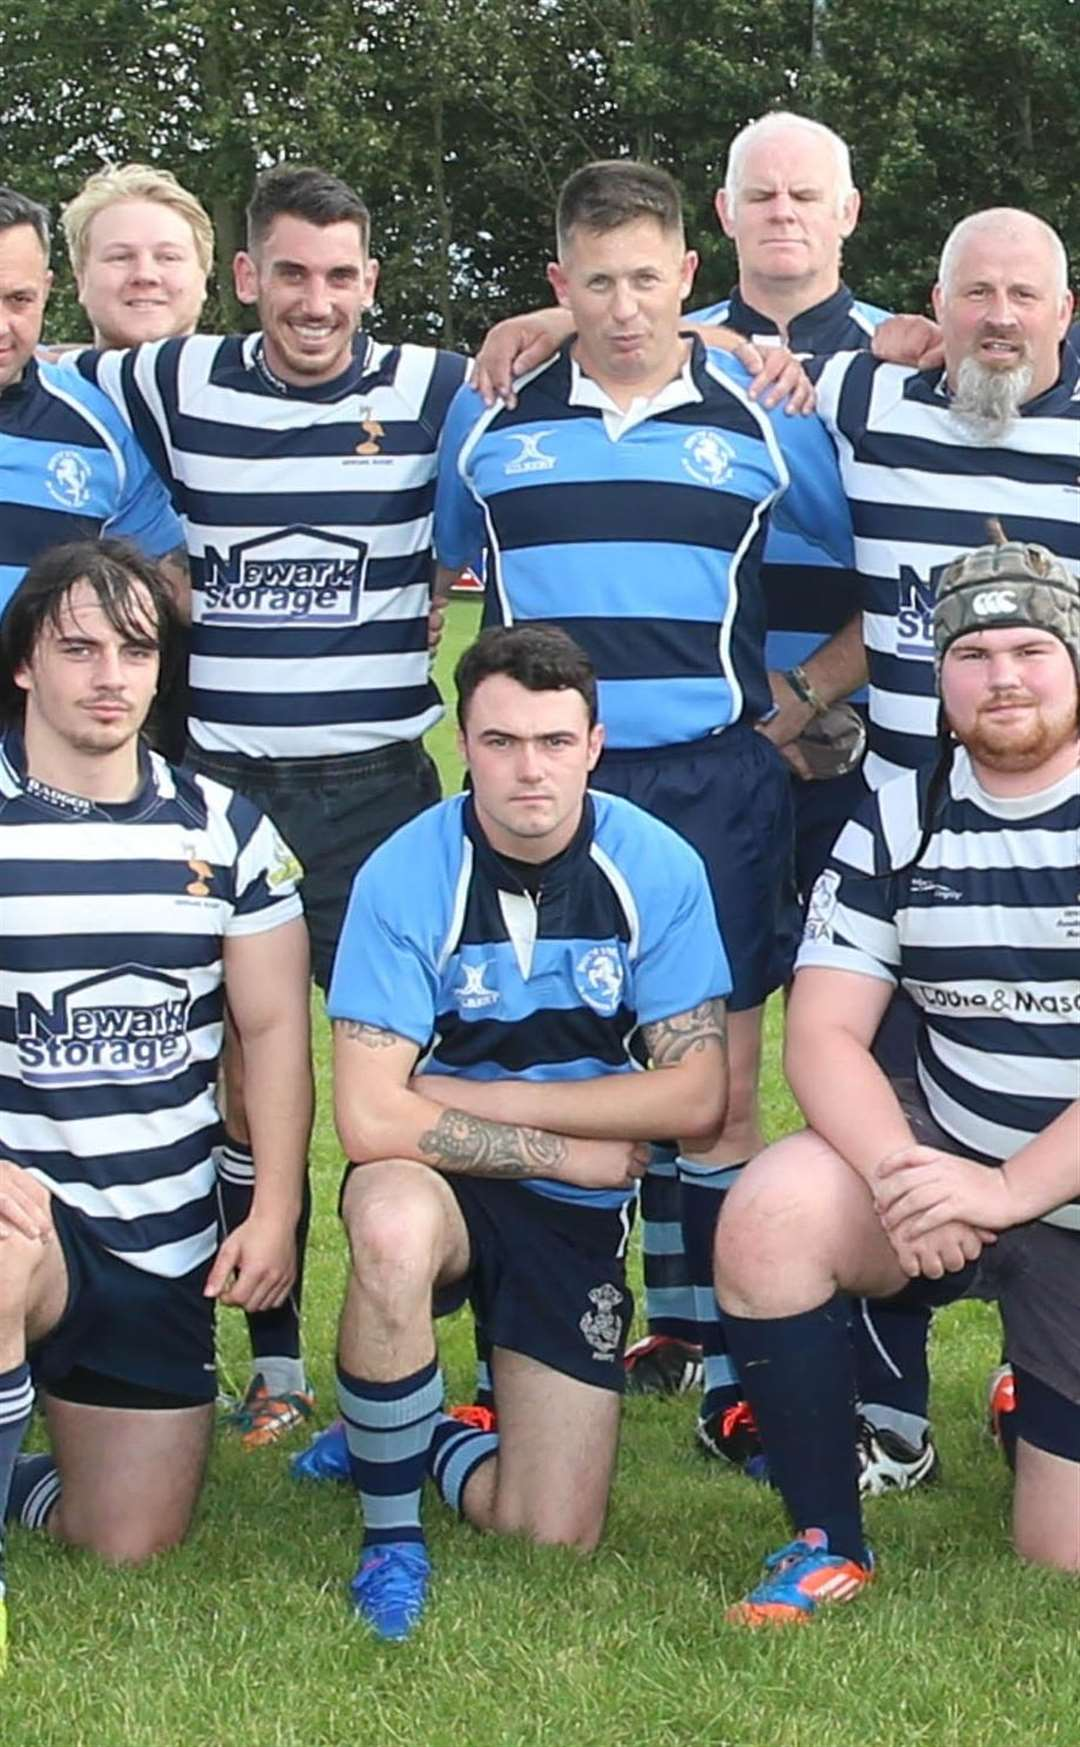 ADAM HOWARD (centre kneeling) lines up for 36 Engineer Regiment in the match in memory of Sean Violino.